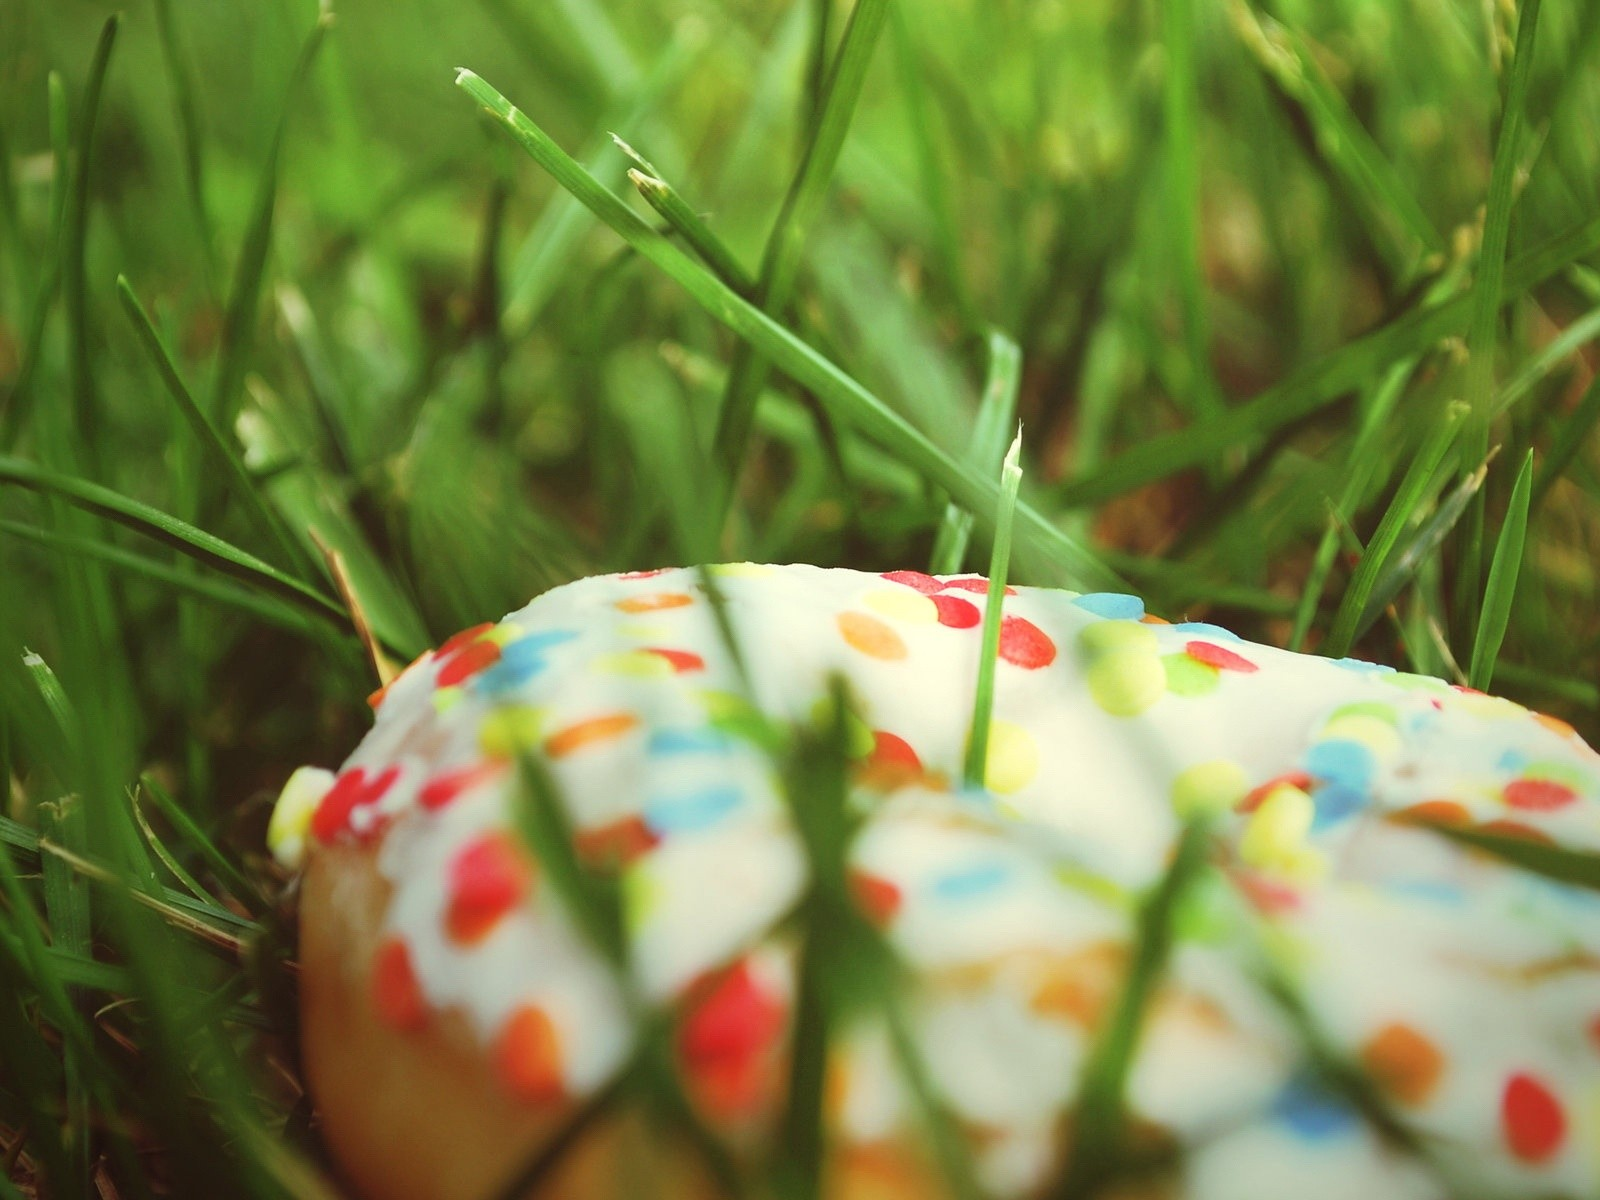 Cake In Grass